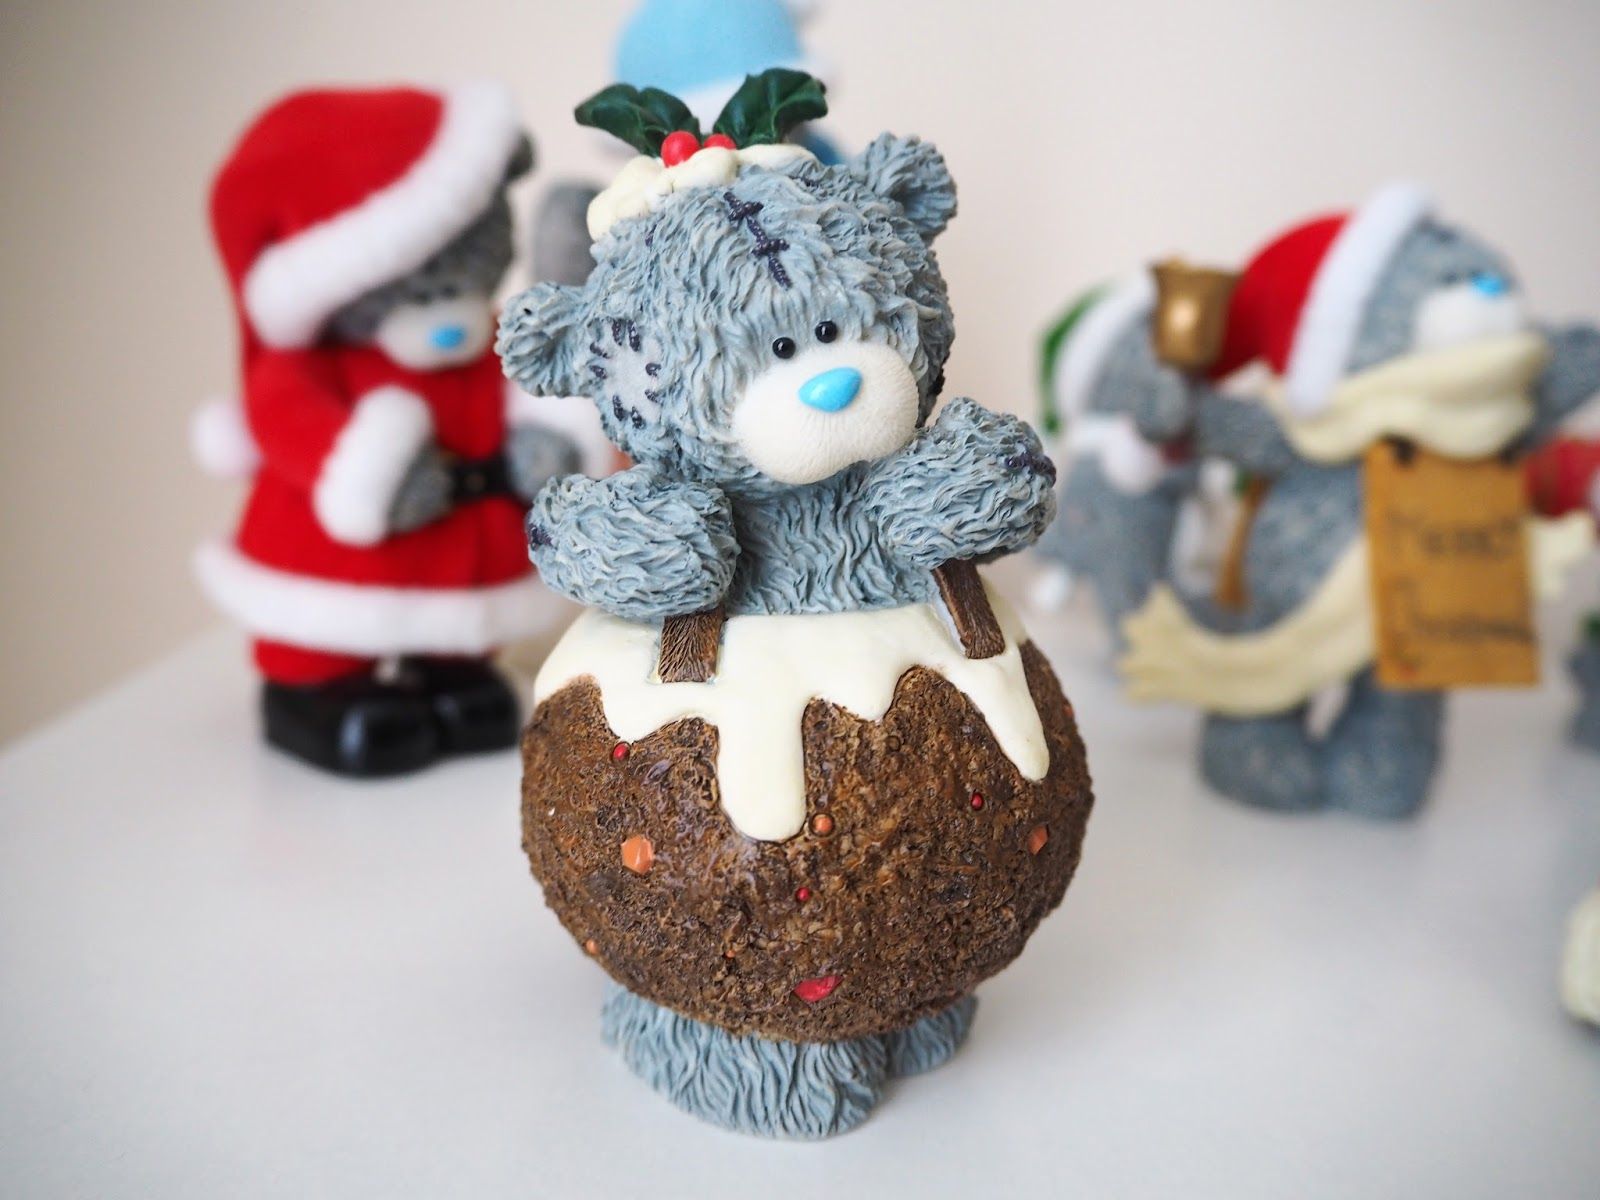 Christmas Throwback: Blogs From 2015, Katie Kirk Loves, Me To You Bear Figurine, UK Blogger, UK Fashion Blogger, UK Beauty Blogger, UK Lifestyle Blogger, UK Food Blogger, West Sussex Bloggers, Brighton Blogger